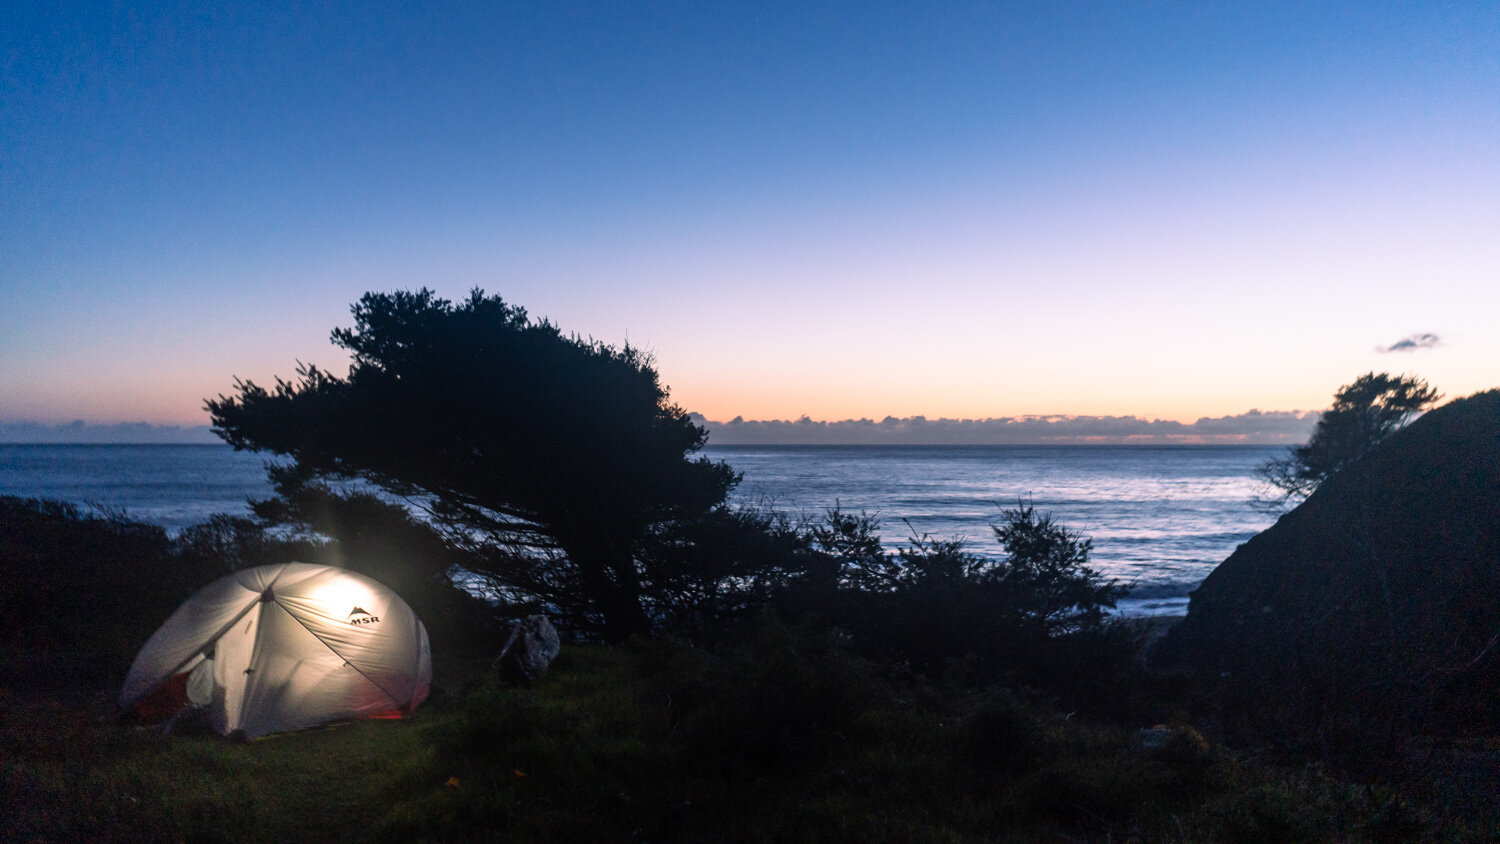 Home sweet home for our final night - our go-to MSR Hubba Hubba tent